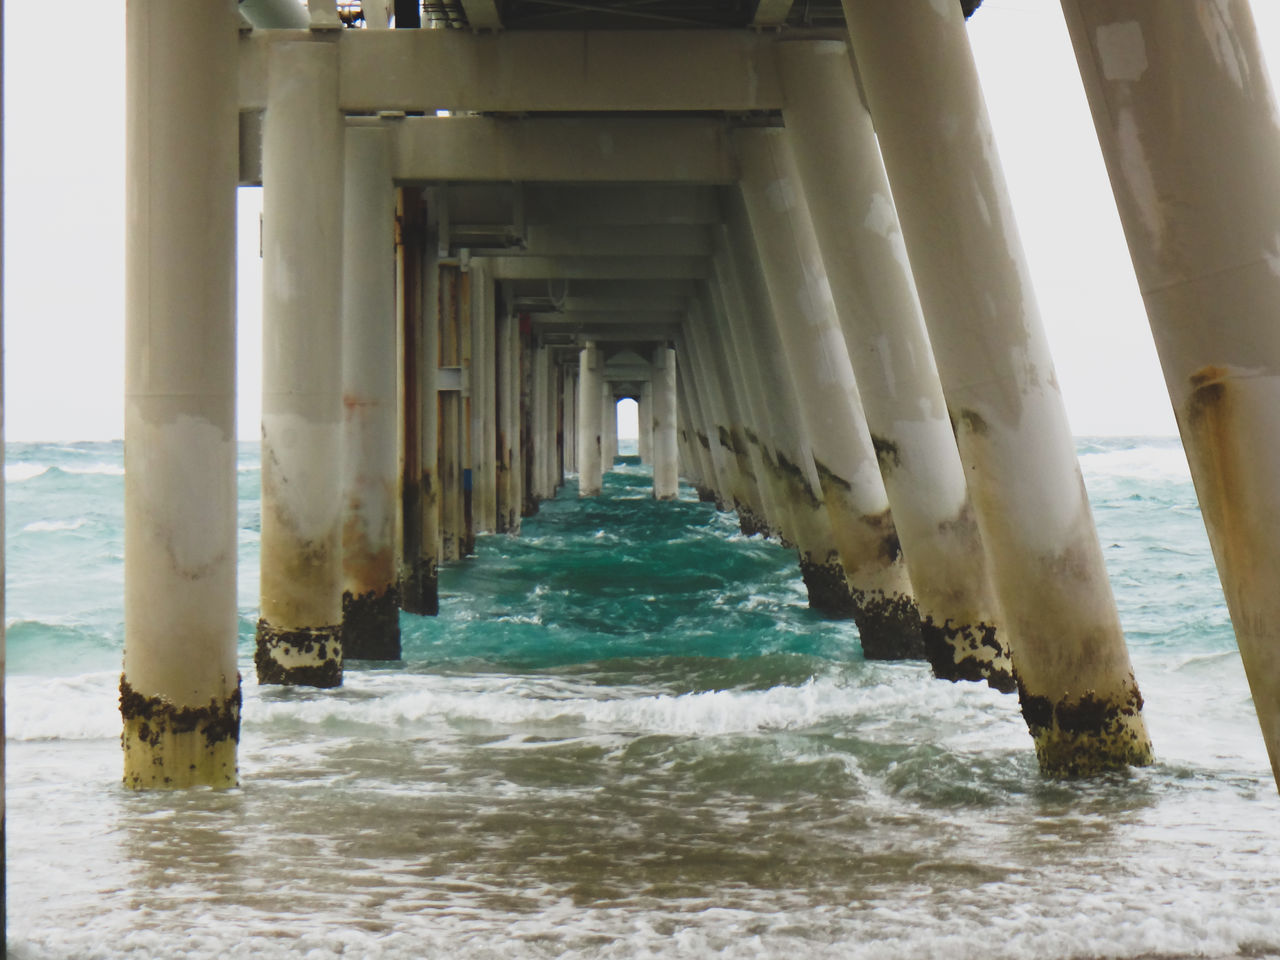 Architectural Column Architecture Beach Beauty In Nature Built Structure Day Horizon Over Water Nature No People Outdoors Pier Sea Sky Underneath Water Wave